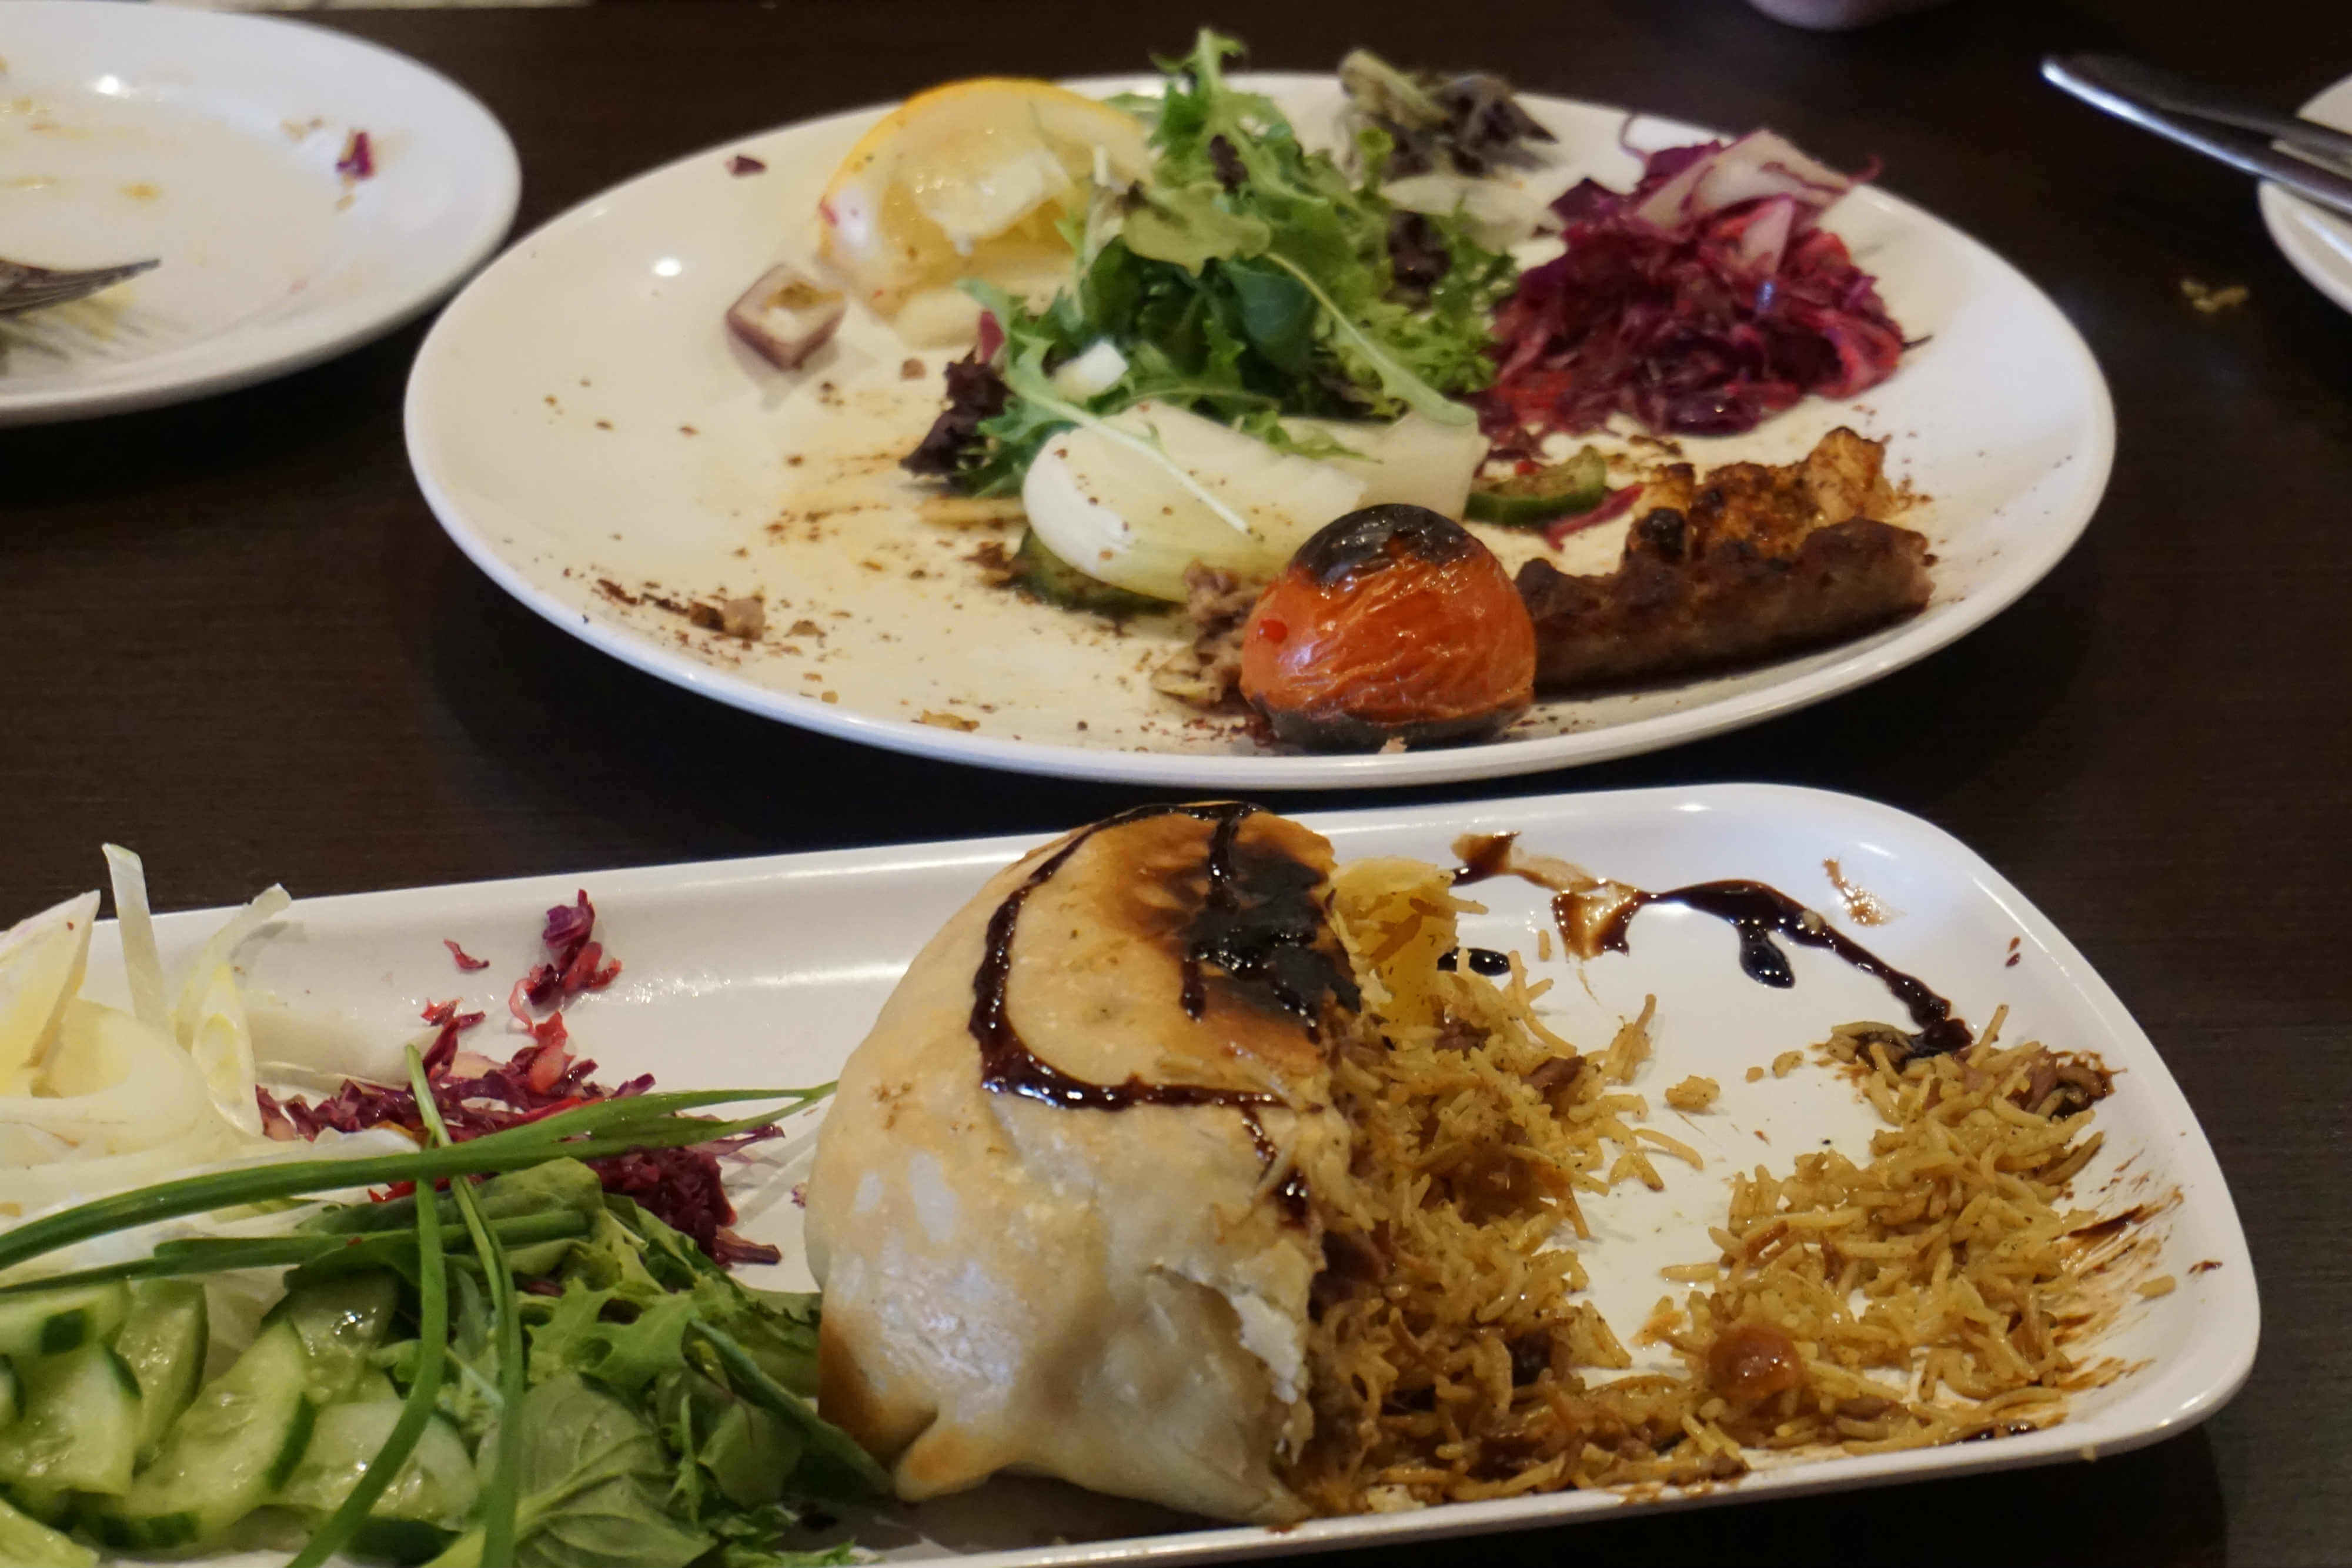 Persian cuisine lunch included in the Babylonian Delights - Fairfield food tour.